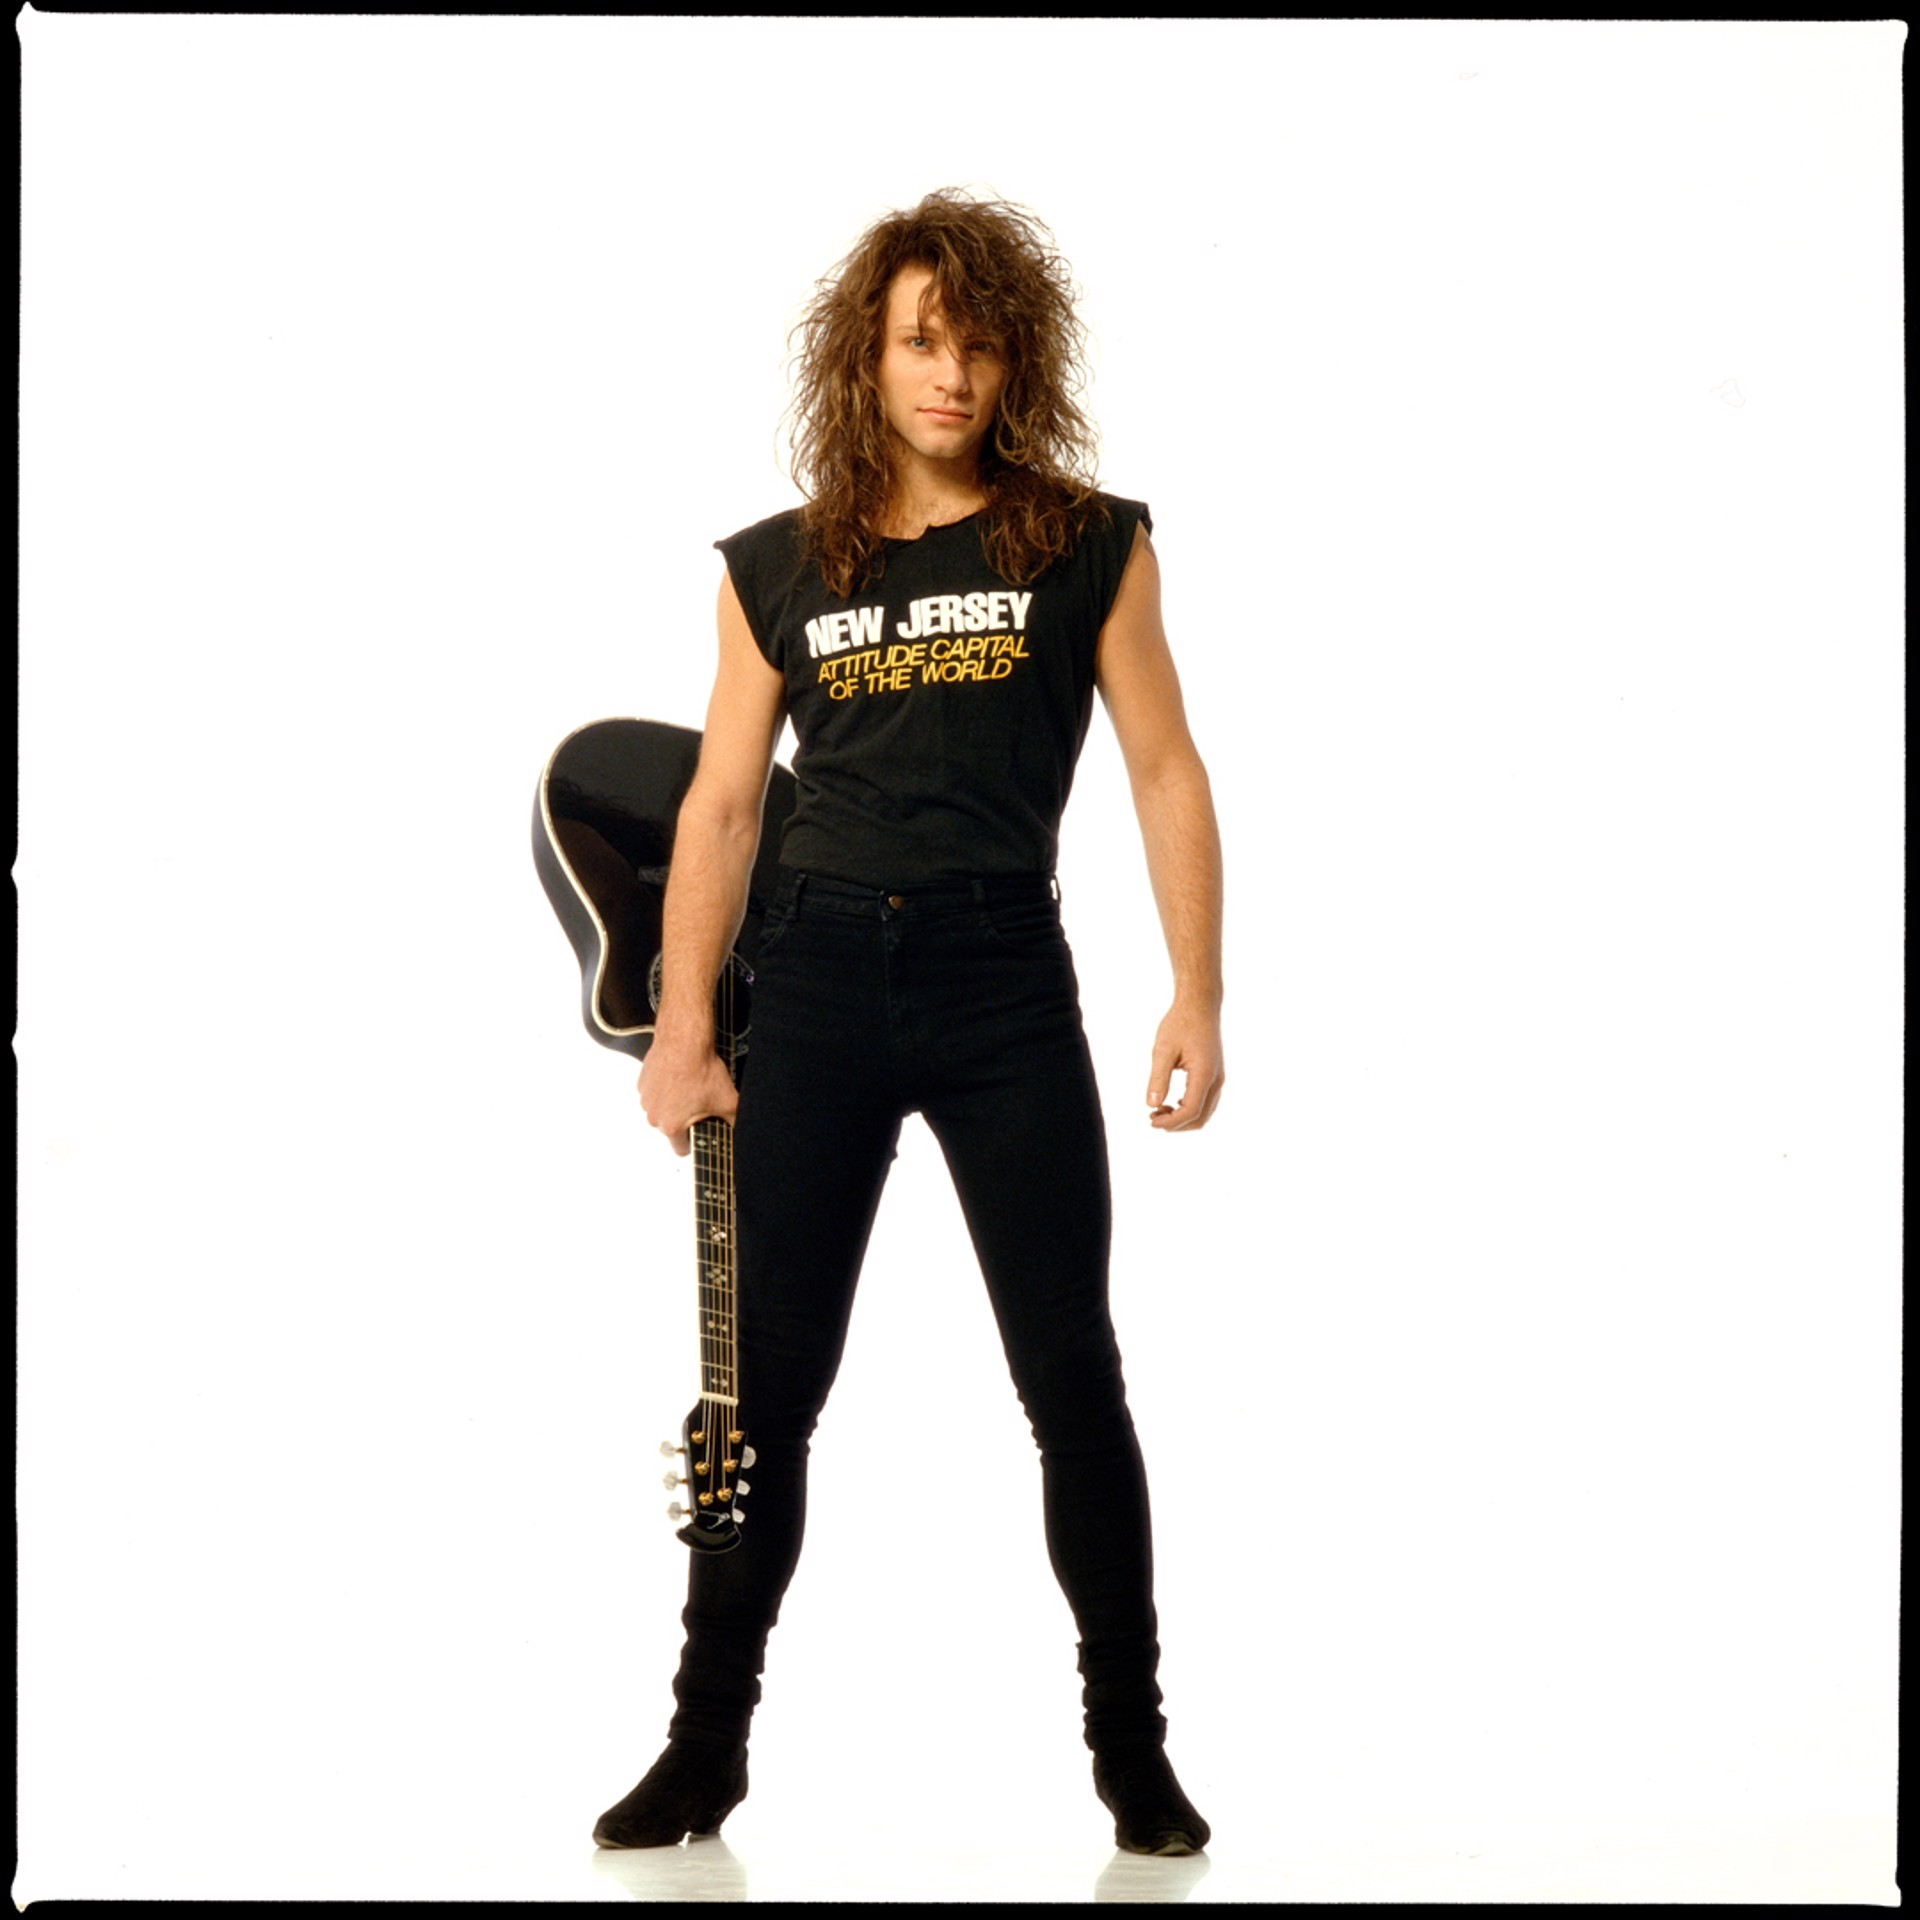 88215 Jon Bon Jovi On White Color by Timothy White